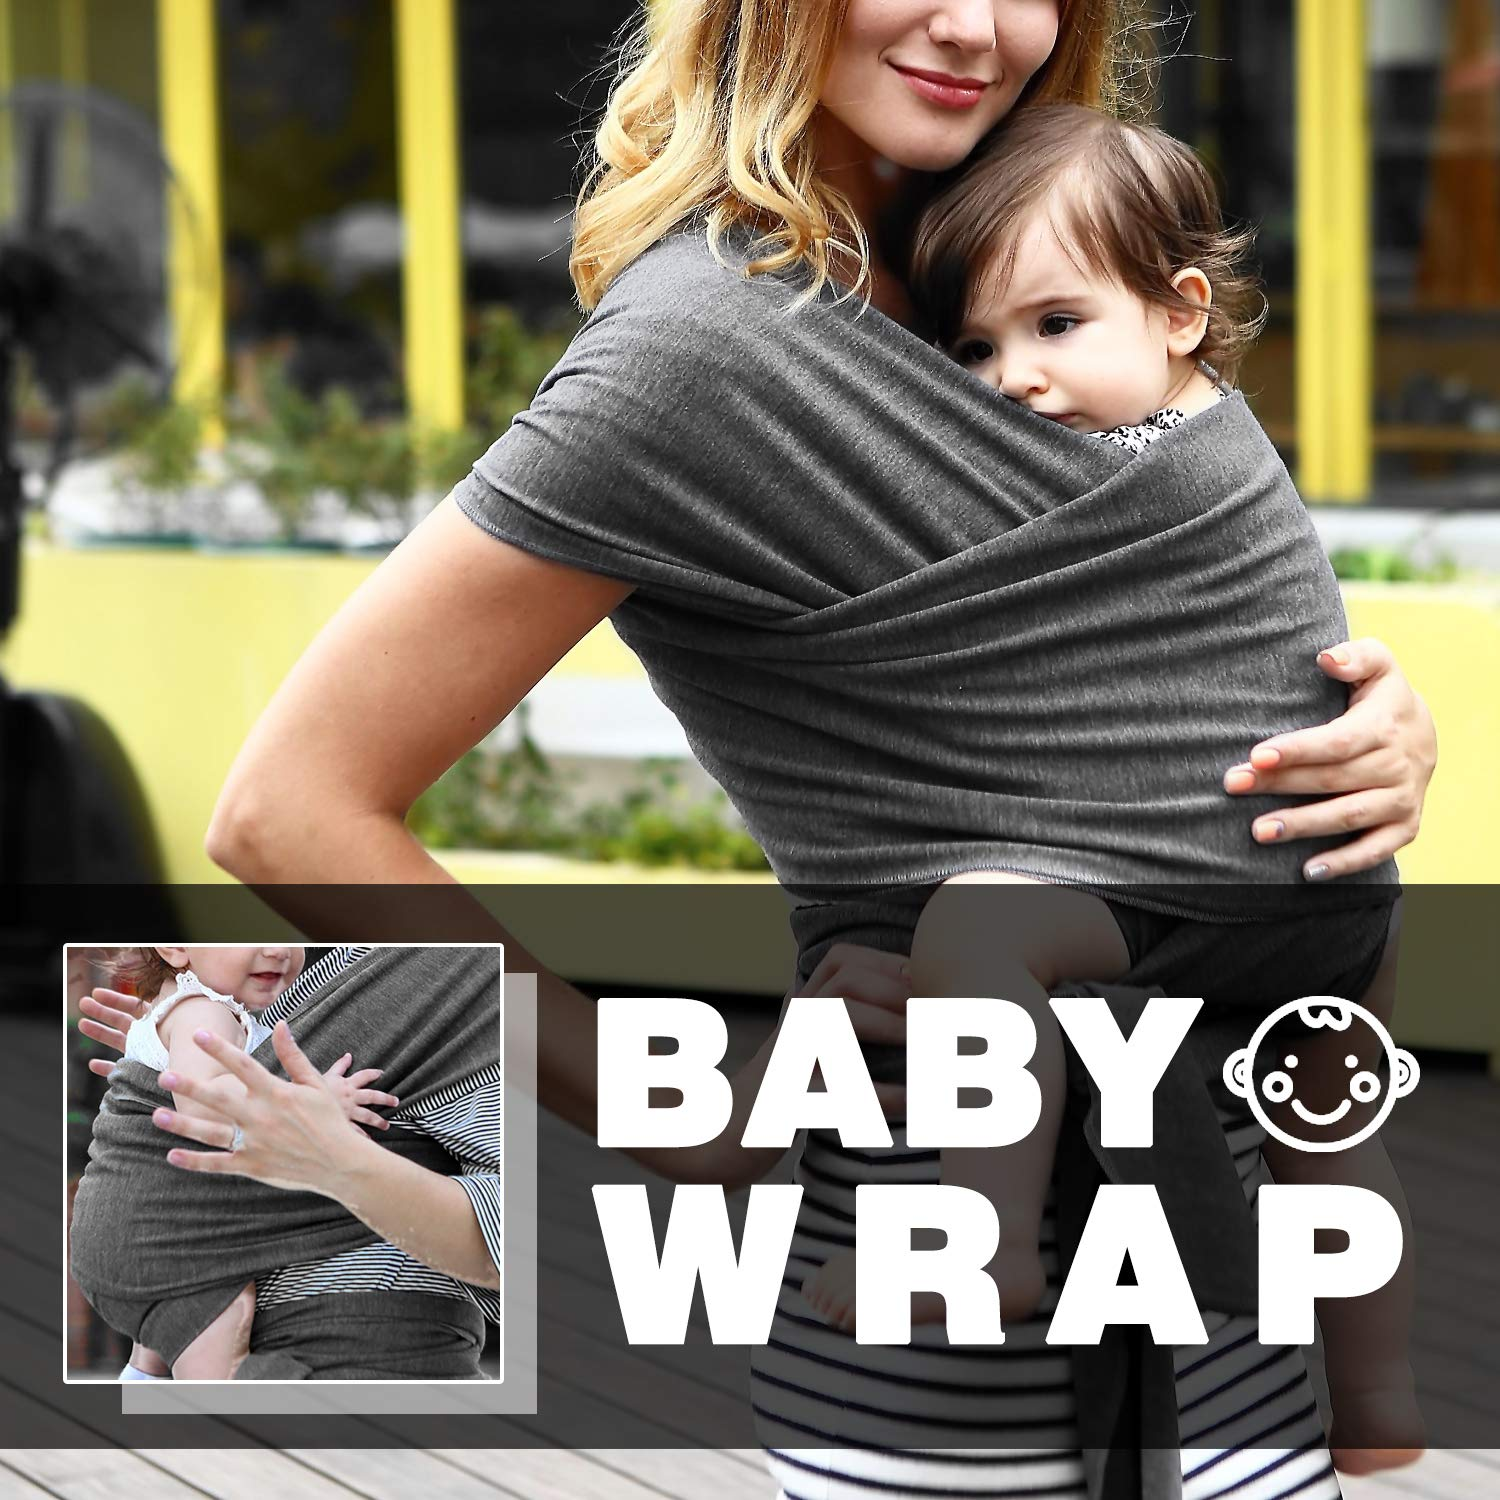 Heather Grey Breathable /& Comfortable Extra Soft Stretch Cotton Baby Carrier Sling and Wraps for Newborn Zooawa Baby Wrap Carrier